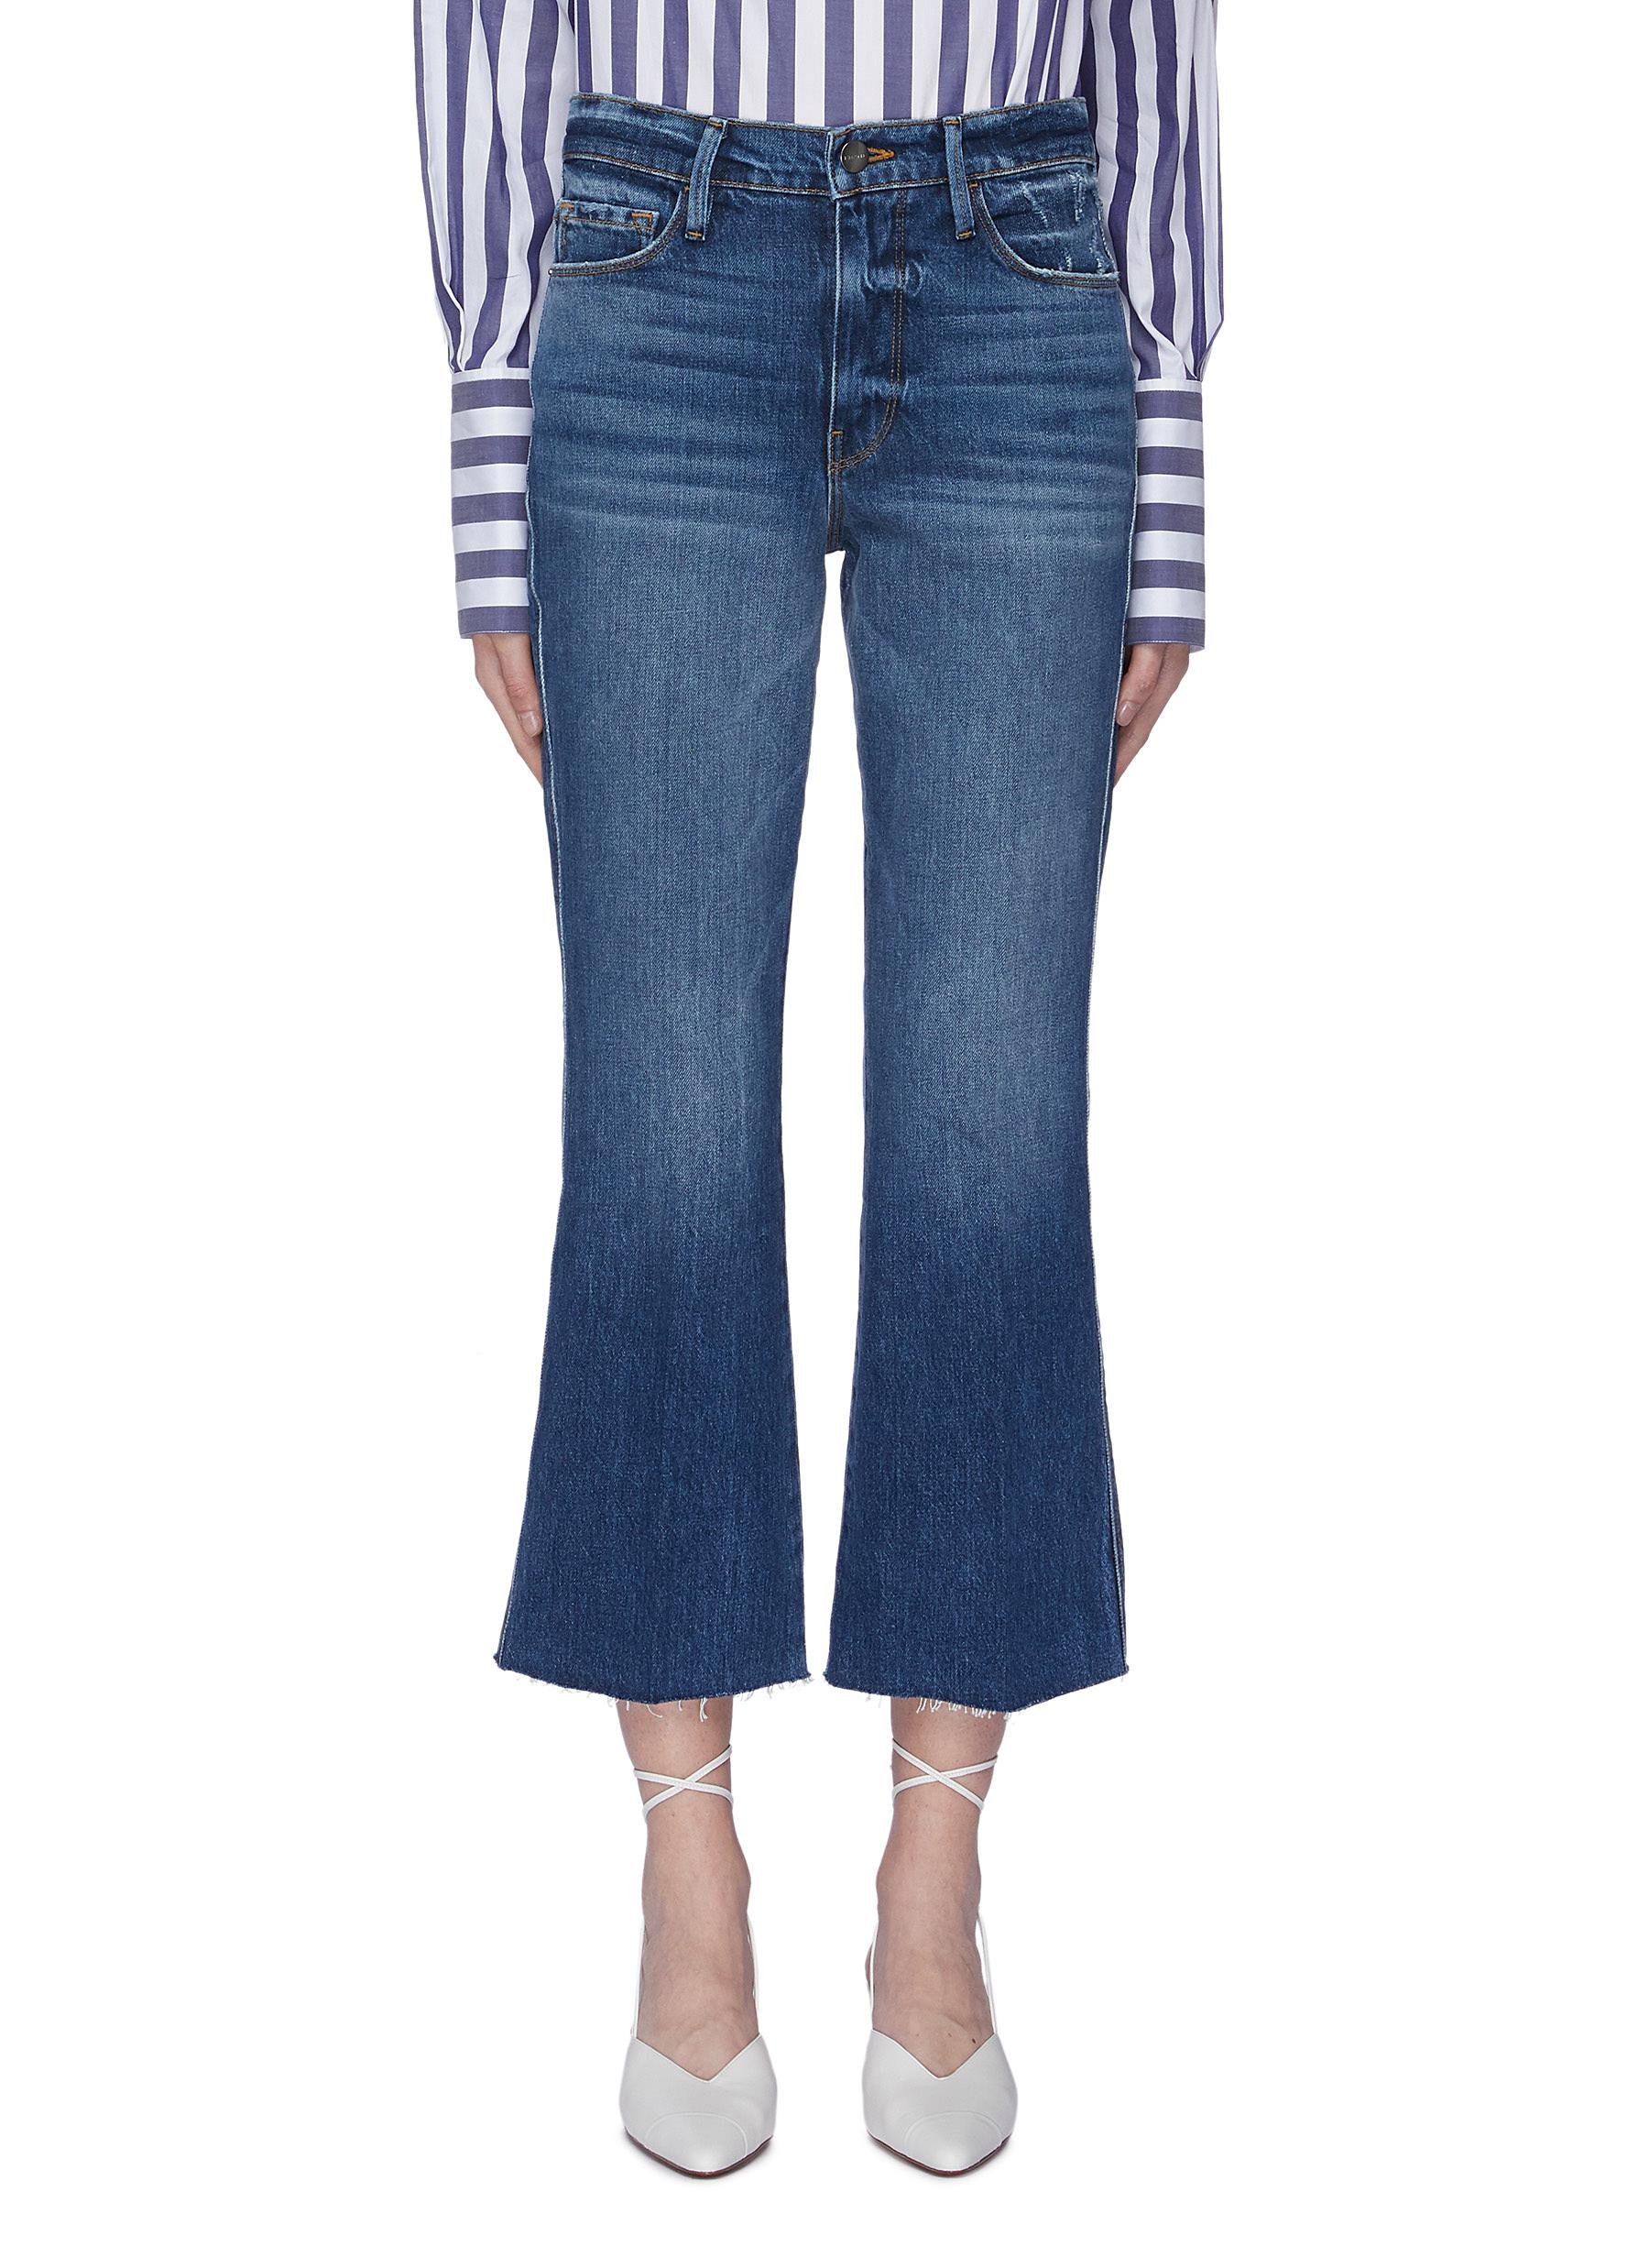 Le Sylvie cropped bootcut jeans by Frame Denim